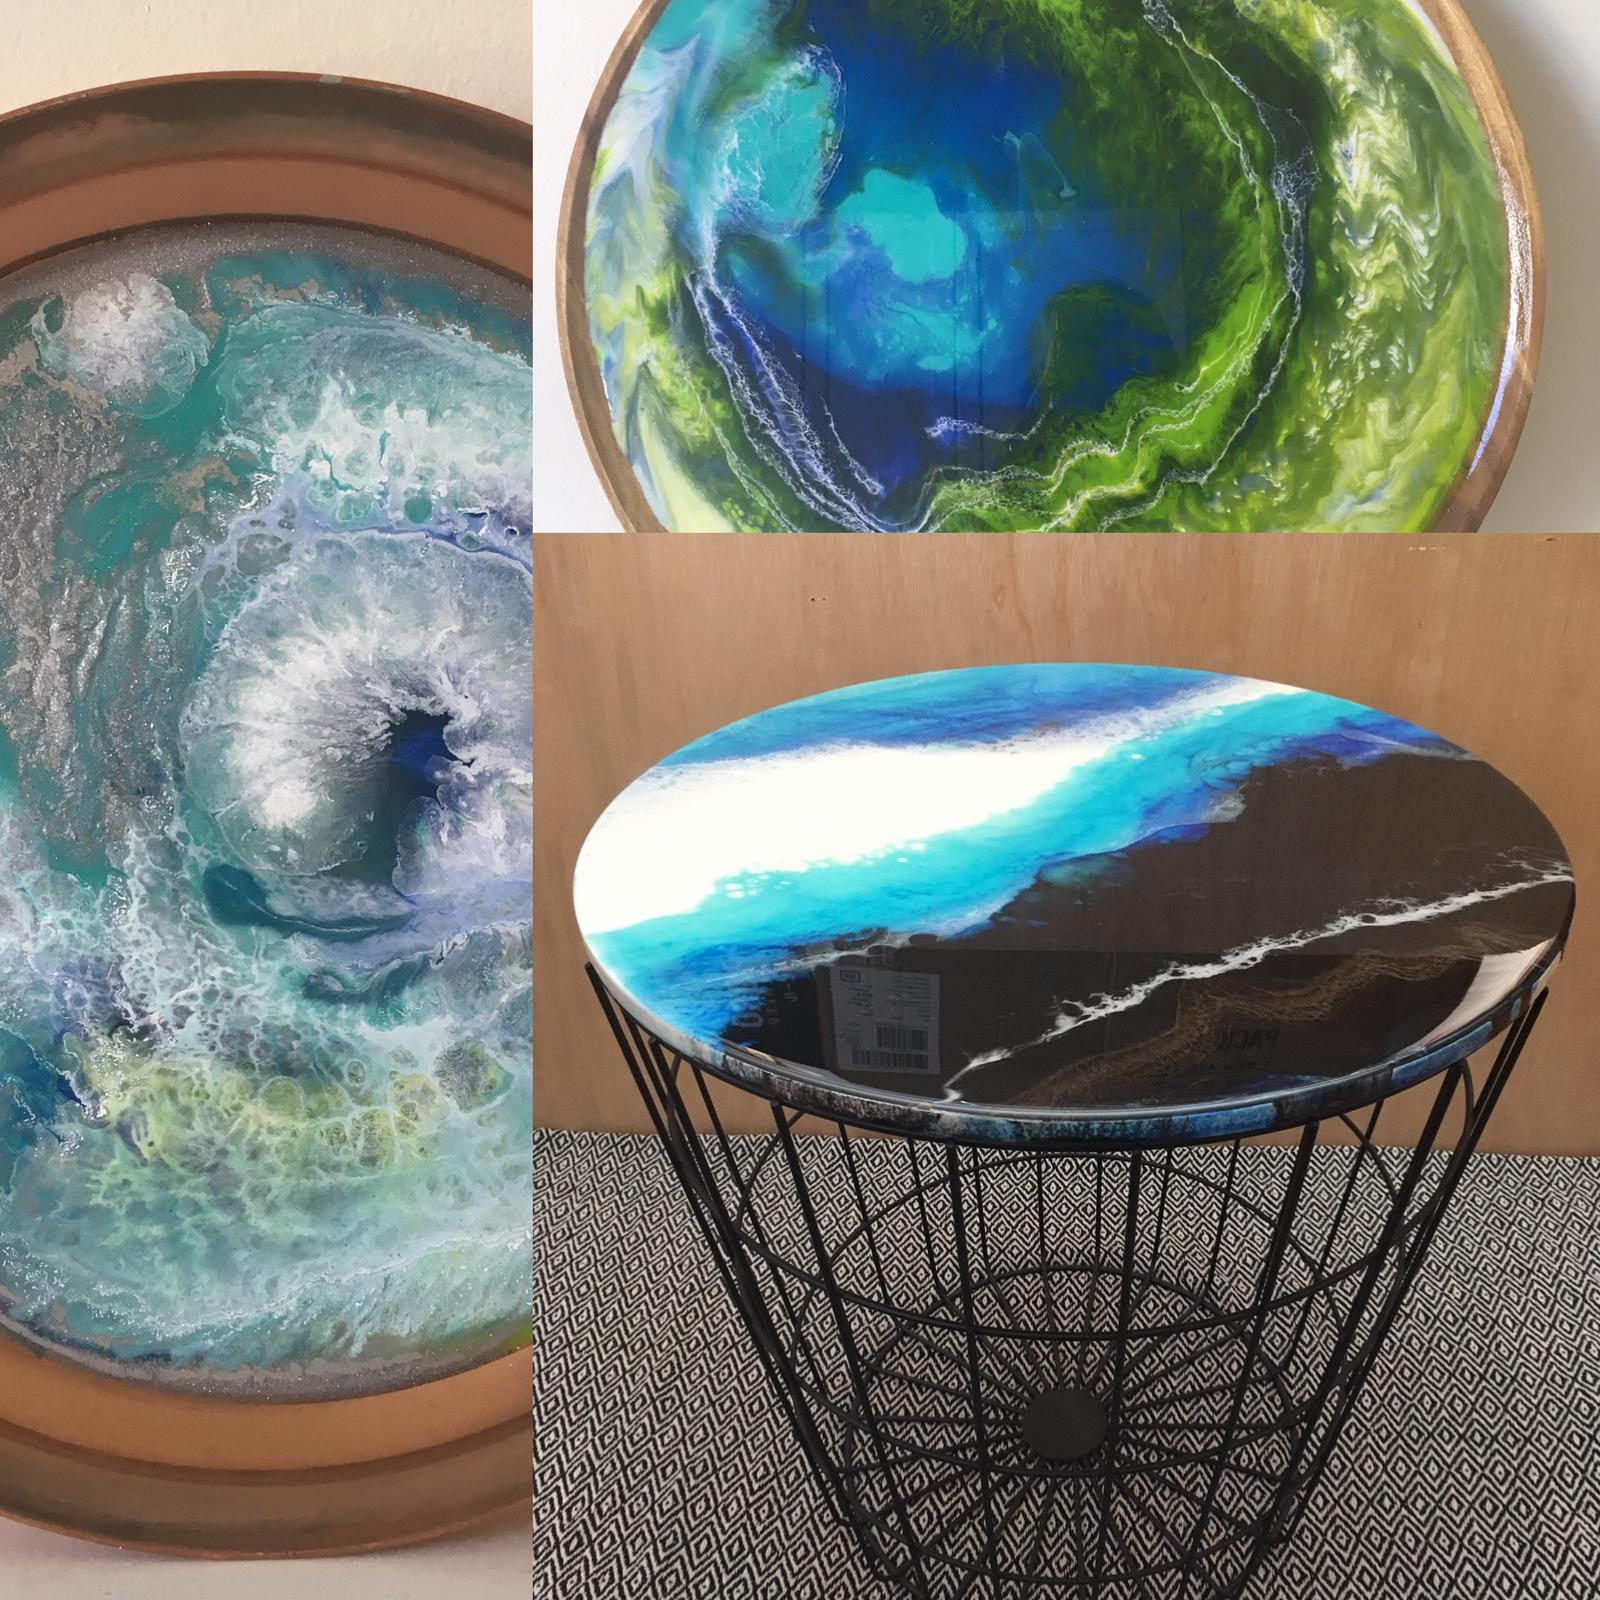 Resinating Blue resin art & homewares